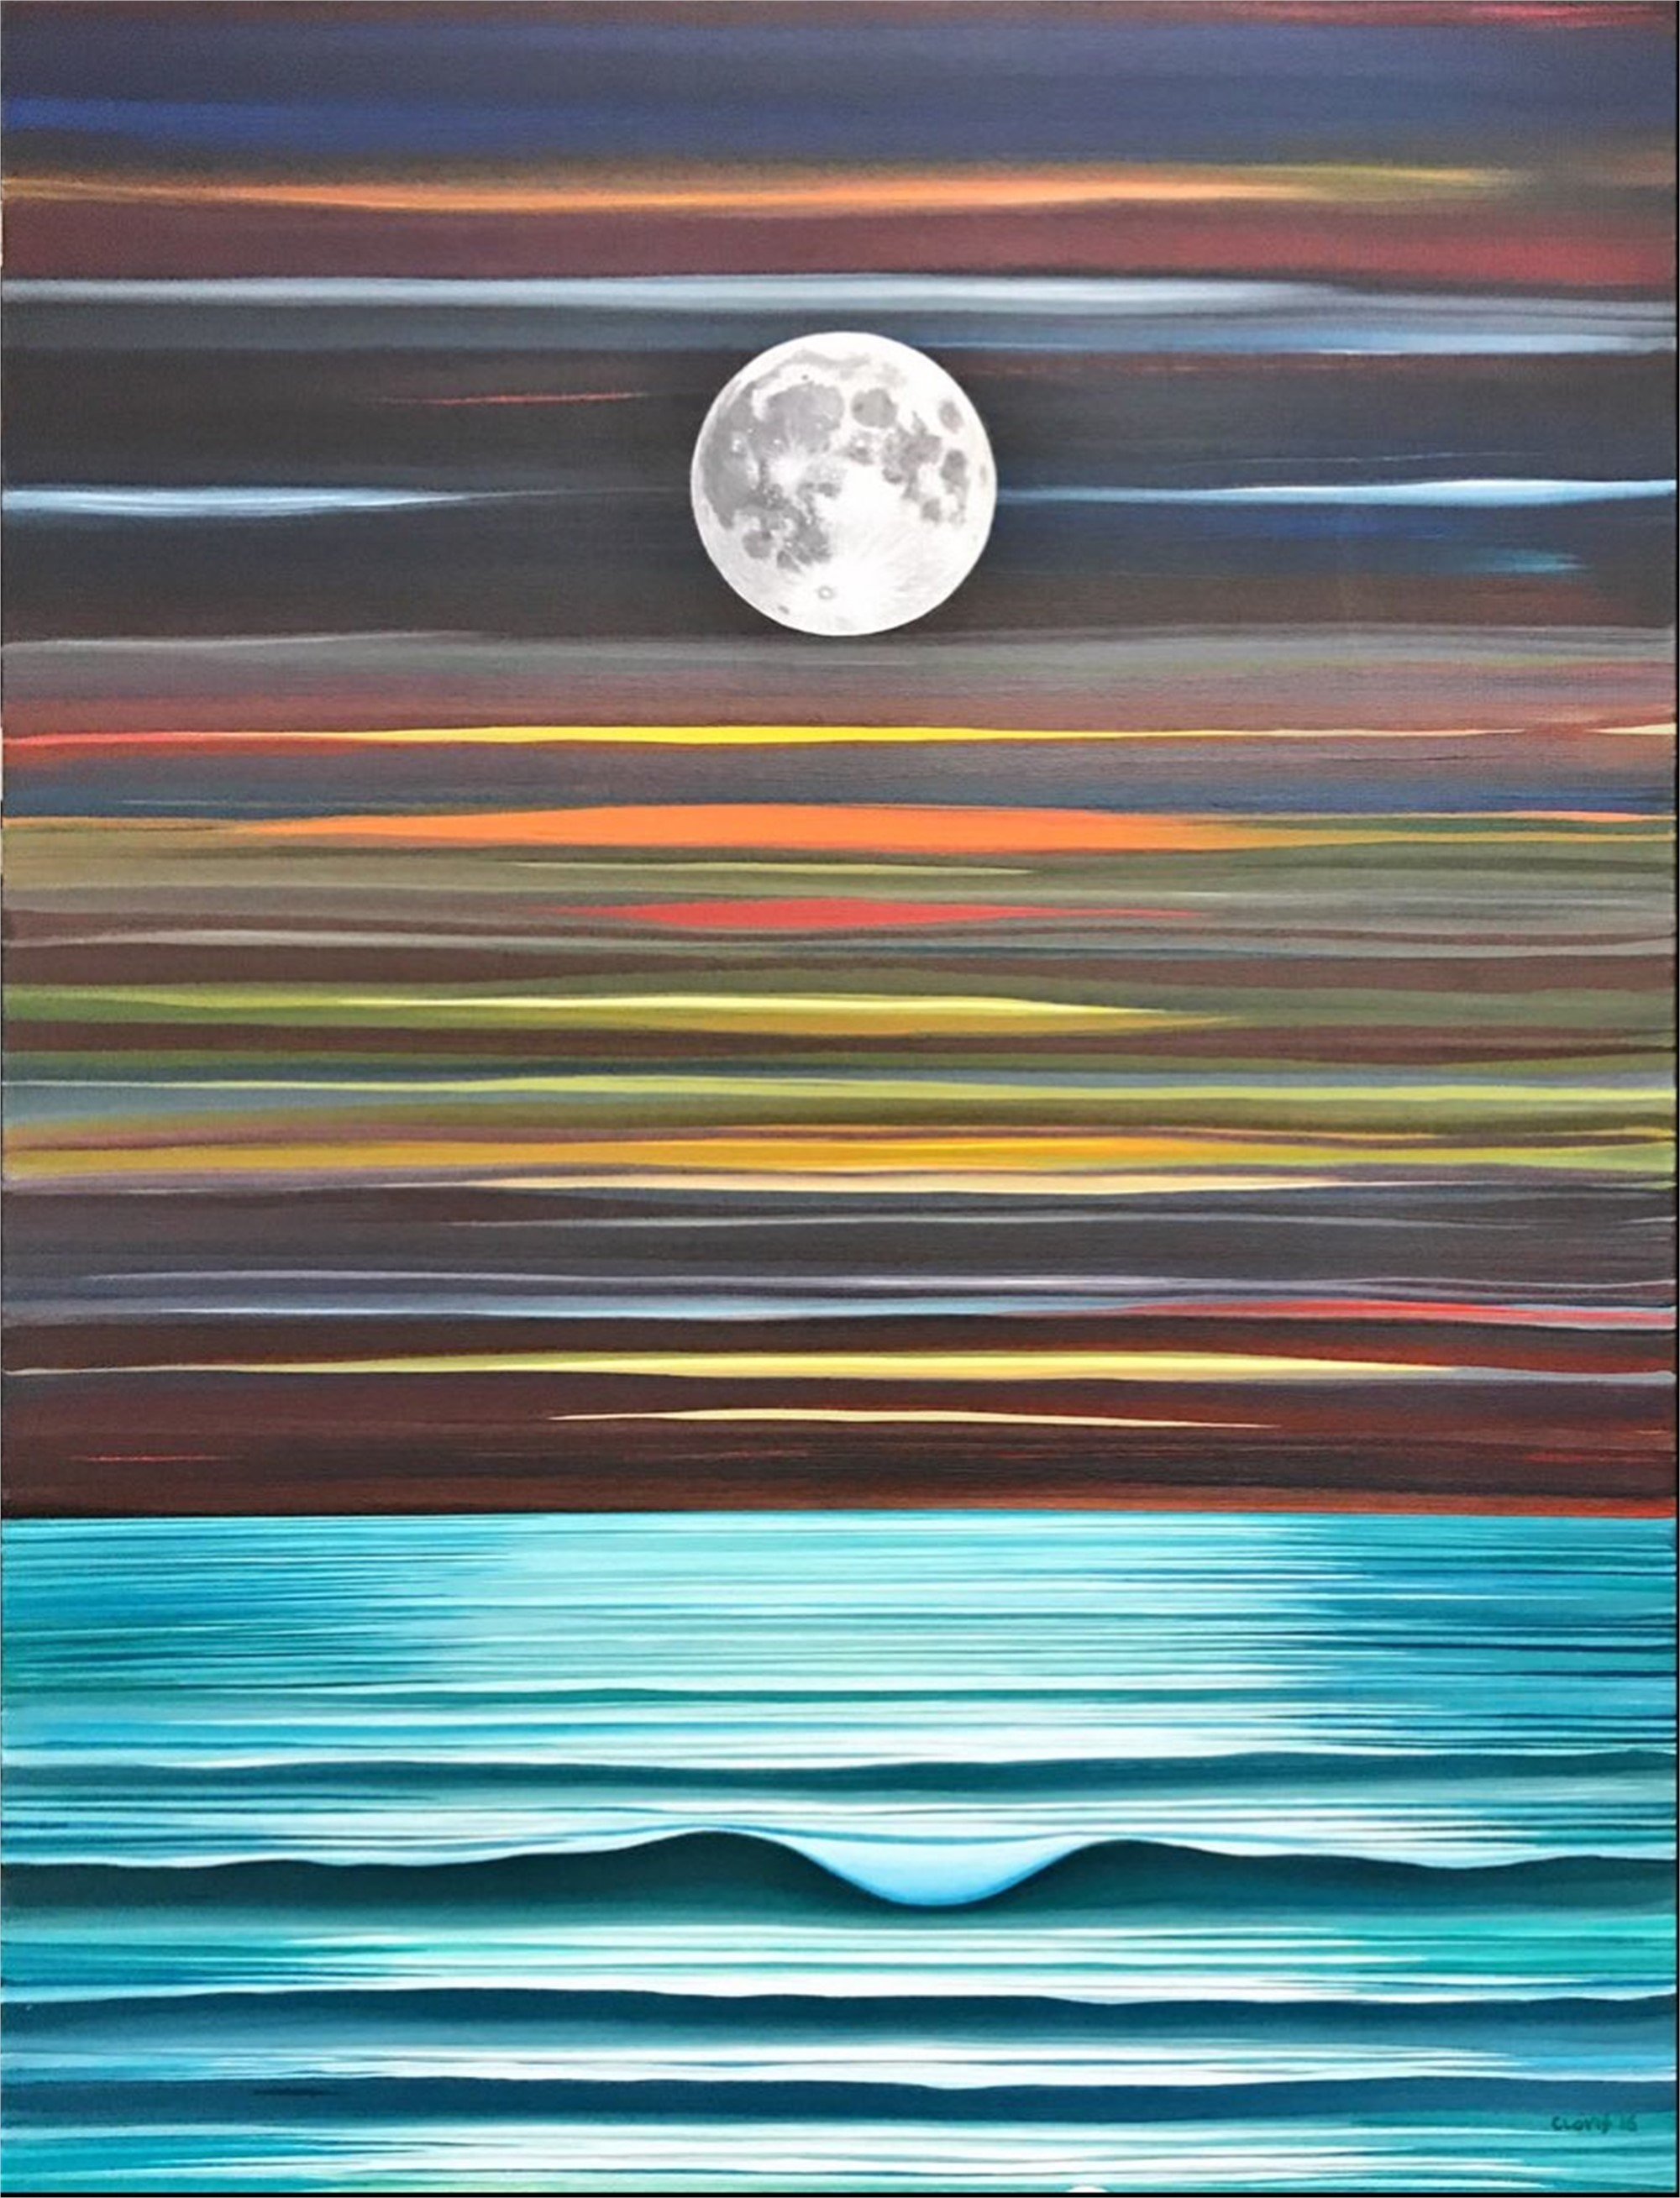 Moon Shiner by Jerry Clovis